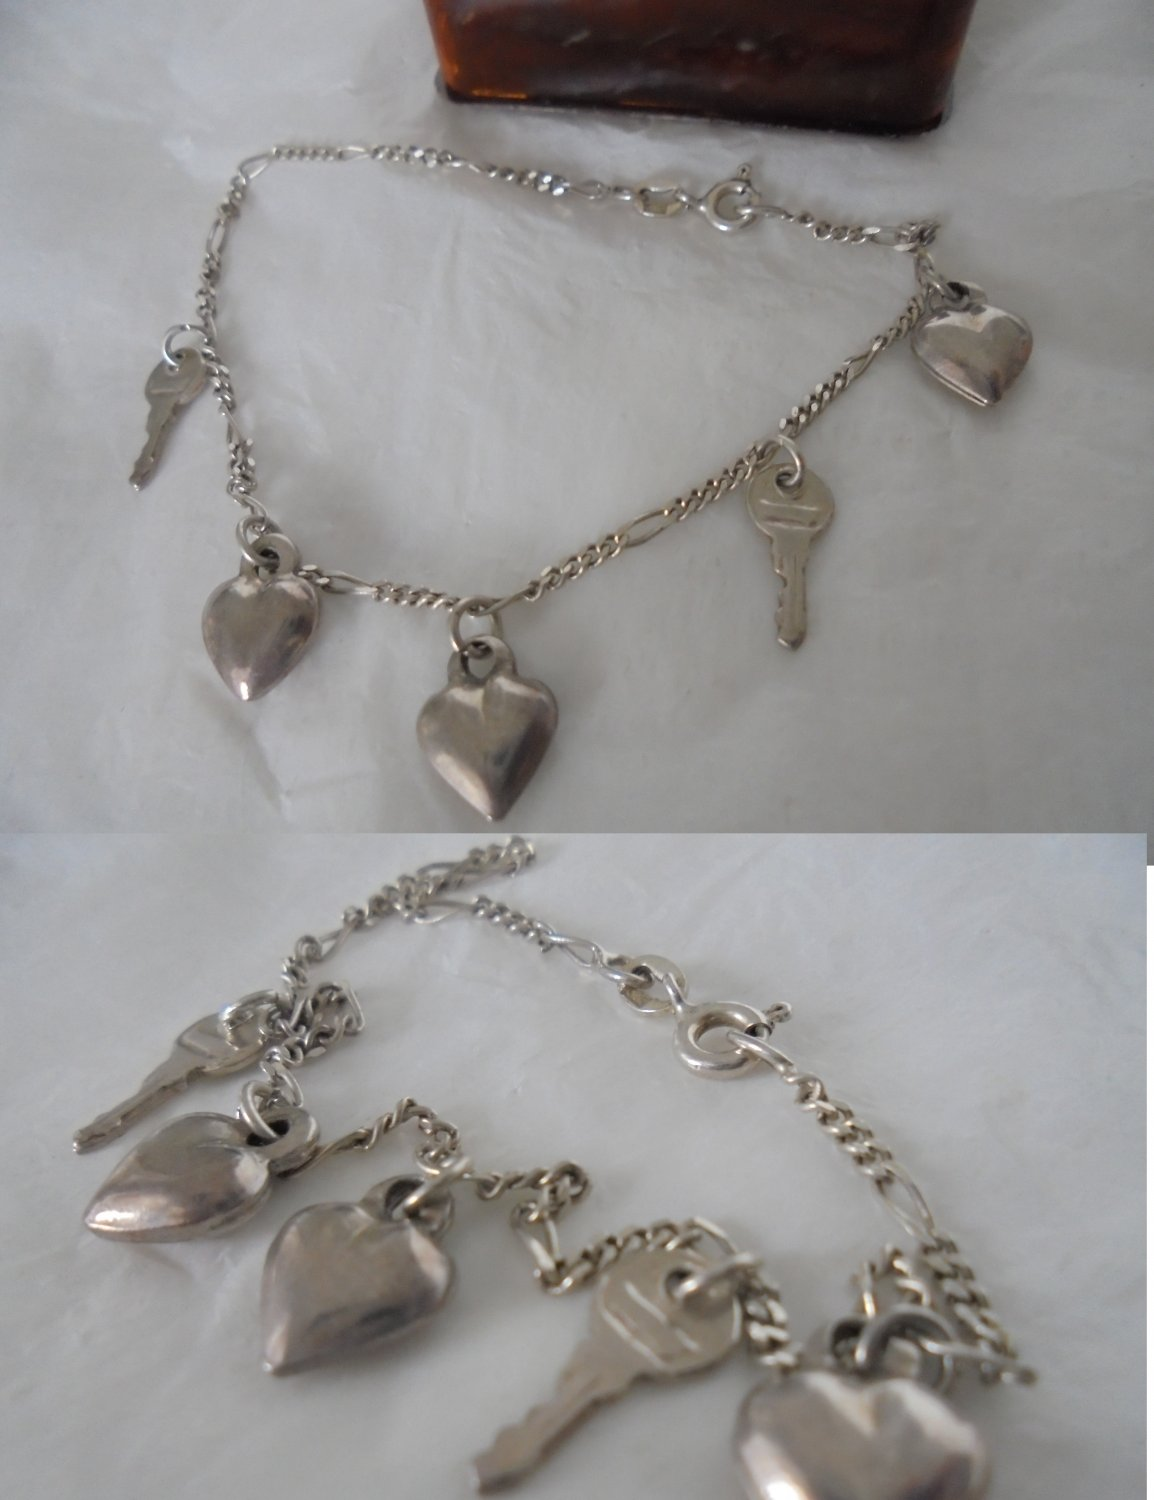 BRACELET in sterling silver 925 with HEARTS and KEYS charms Original in gift box